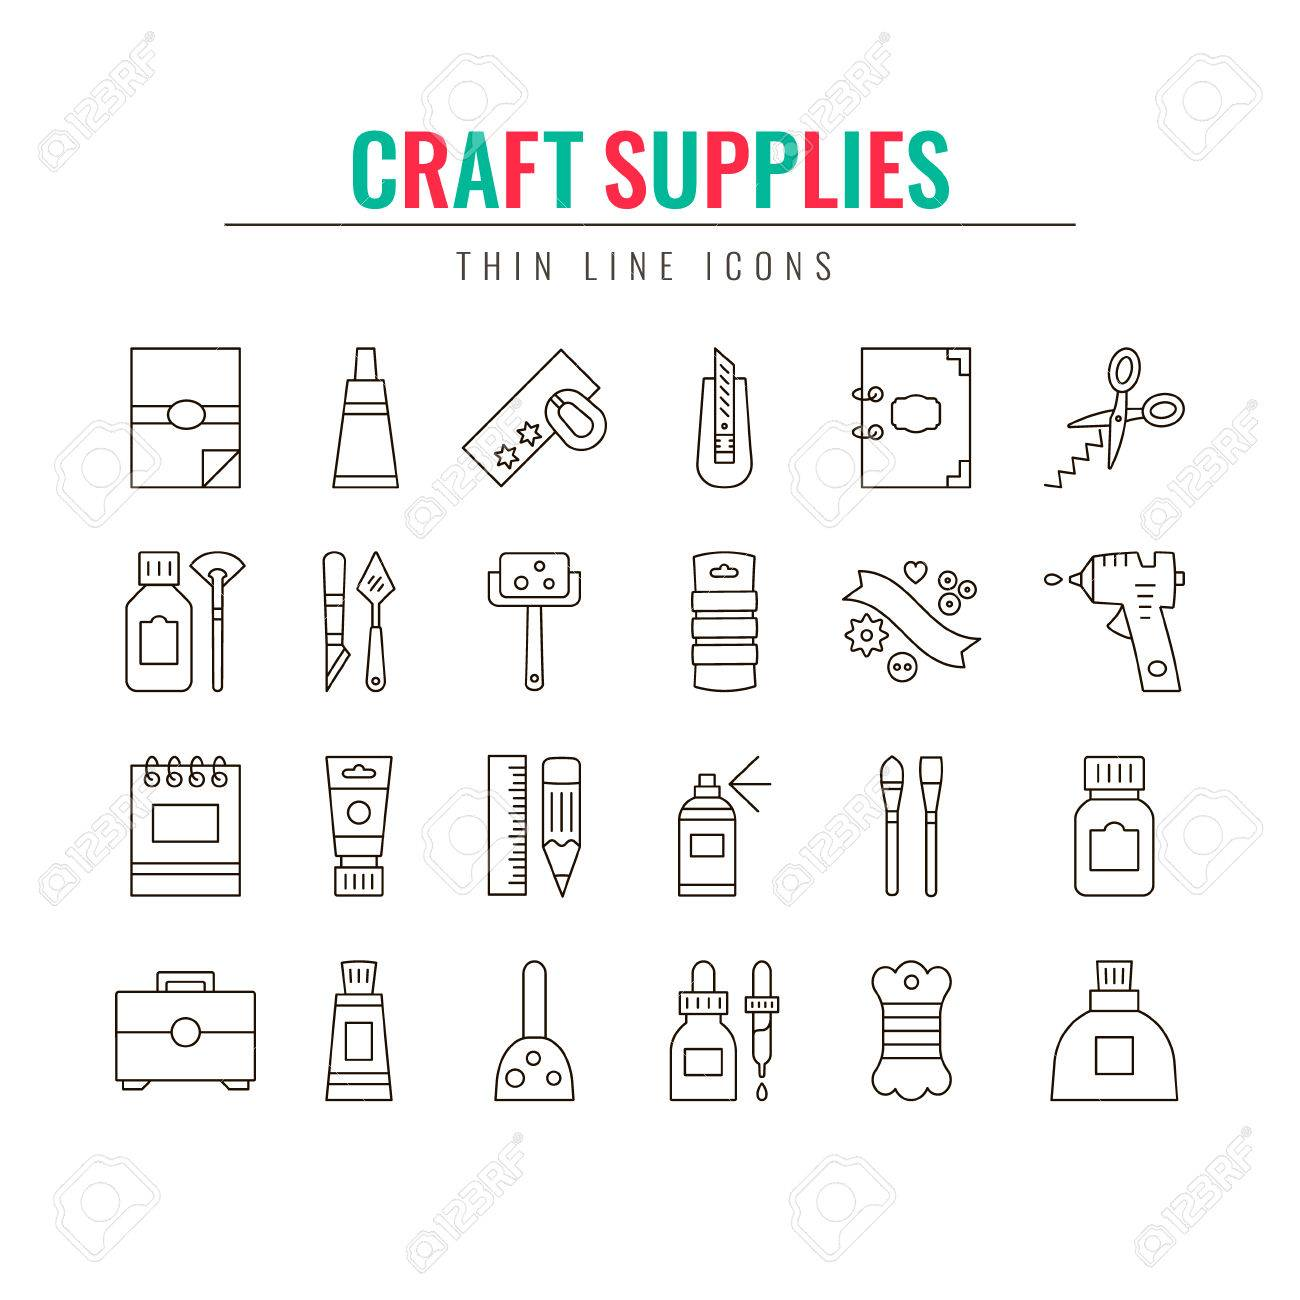 Craft Supplies Materials Thin Line Icons Set Elements For